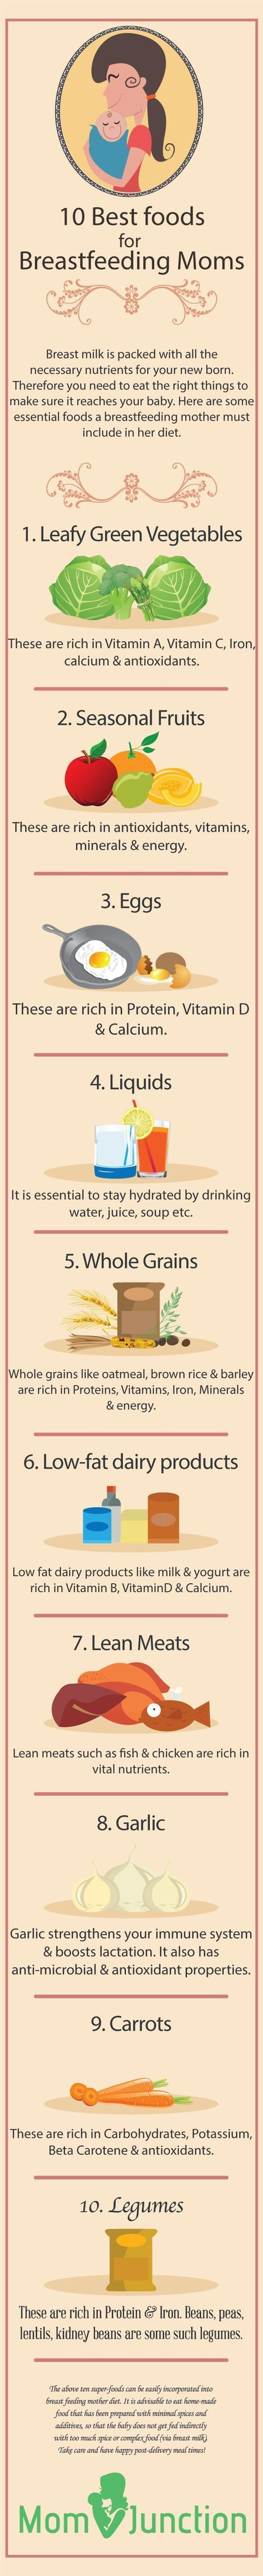 Foods For Breastfeeding Moms: There are certain foods that are very helpful for her to heal quickly and maintain good health. some essential must have foods to include in the diet for #breastfeeding mothers.